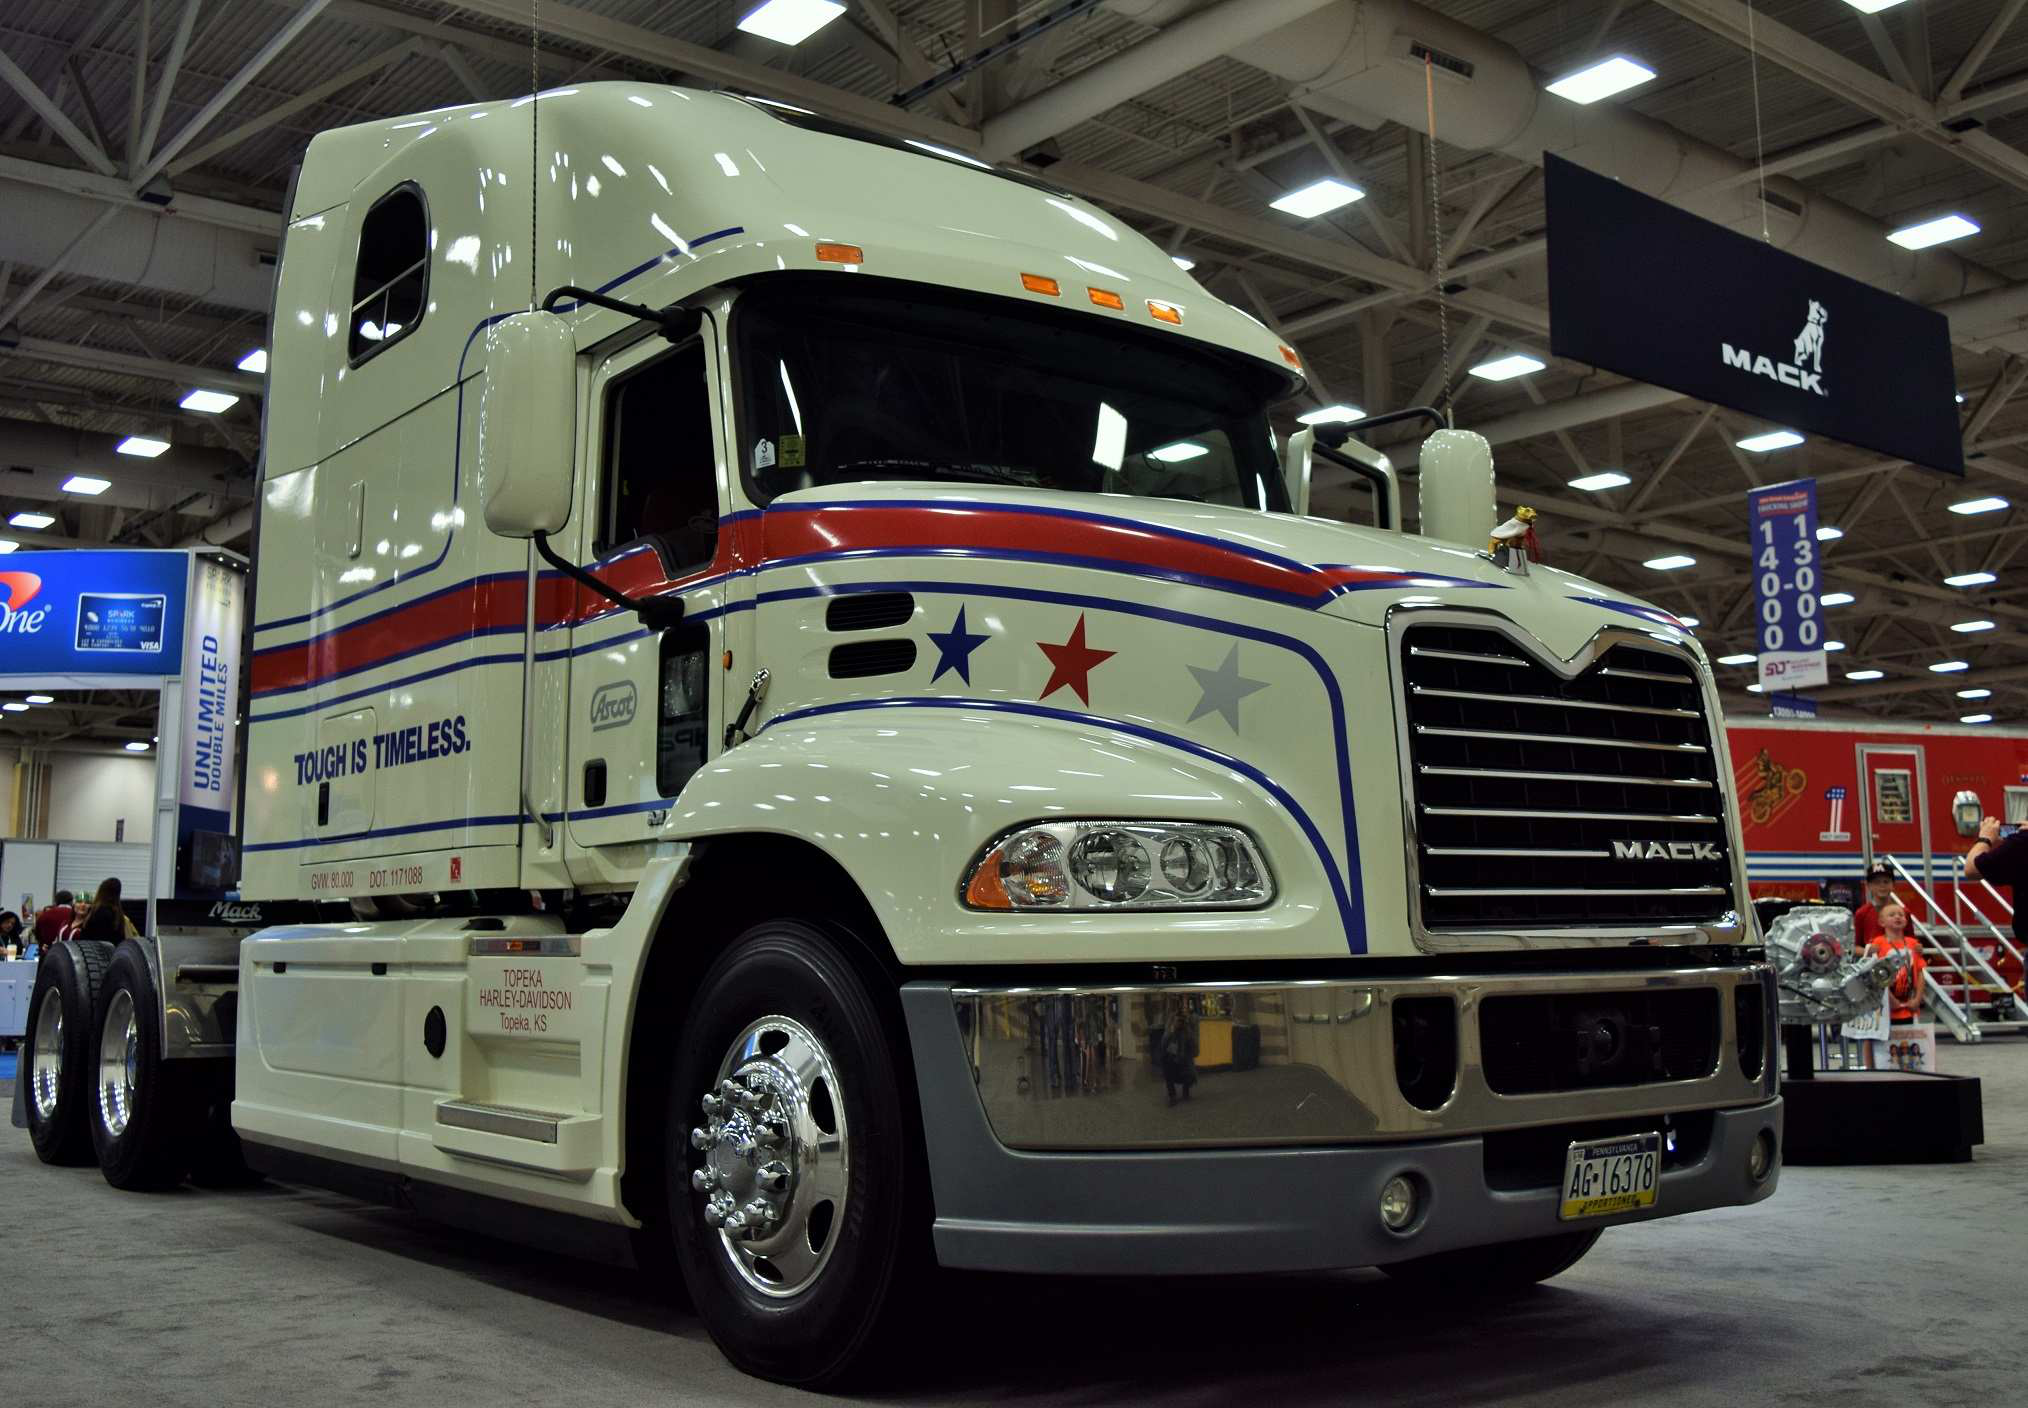 A special Mack is back: Evel Knievel combo moves closer to